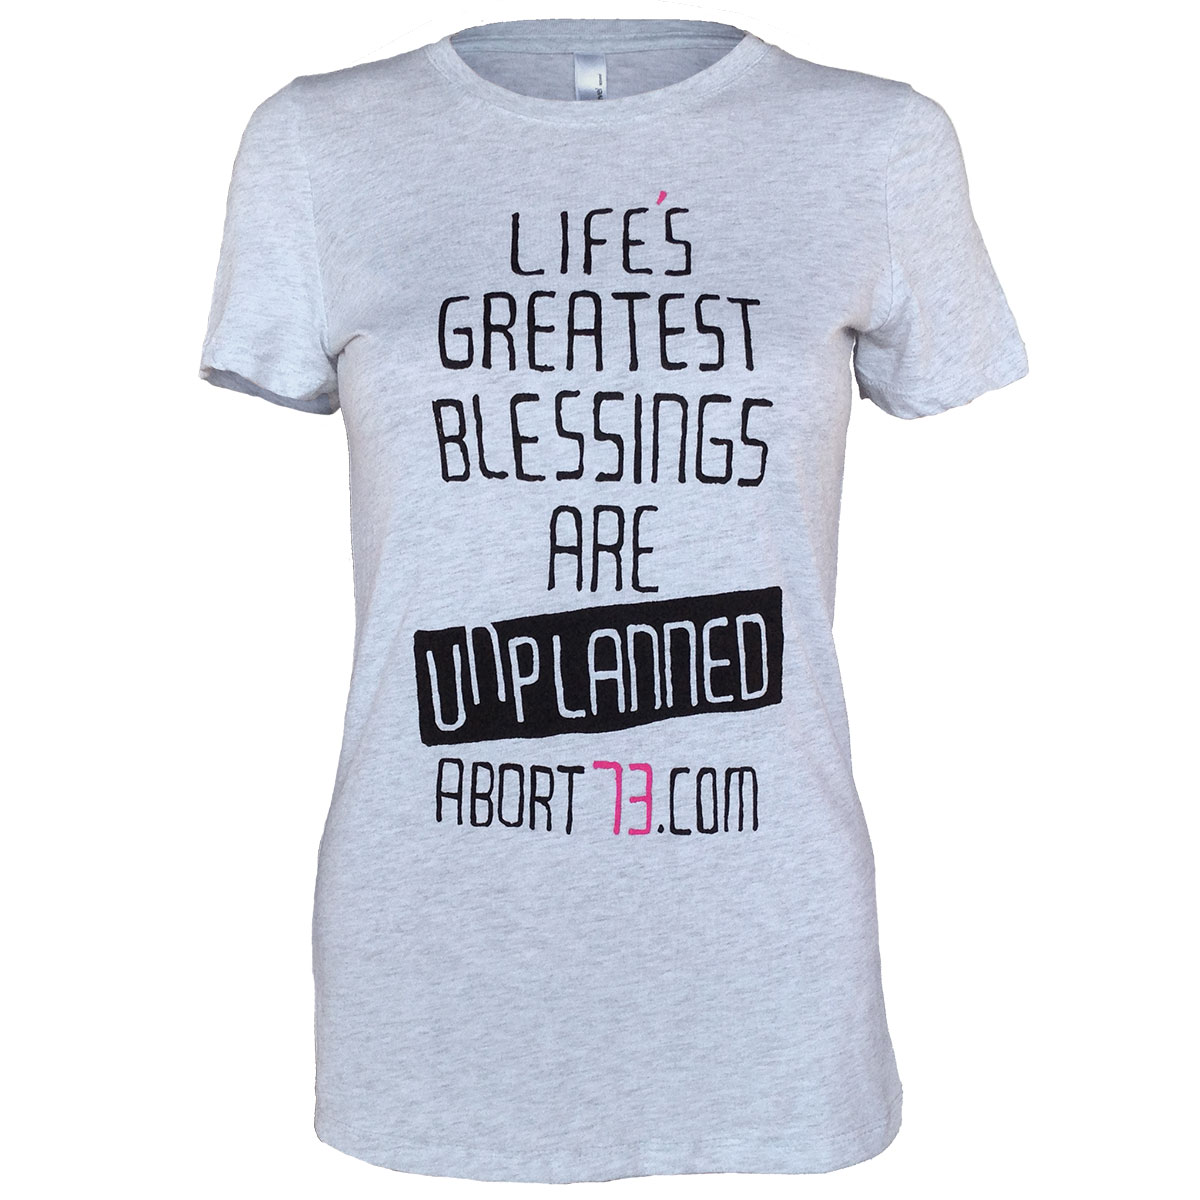 Life's Greatest Blessings Are Unplanned (Abort73 Girls Tri-Blend T-shirt 6710)